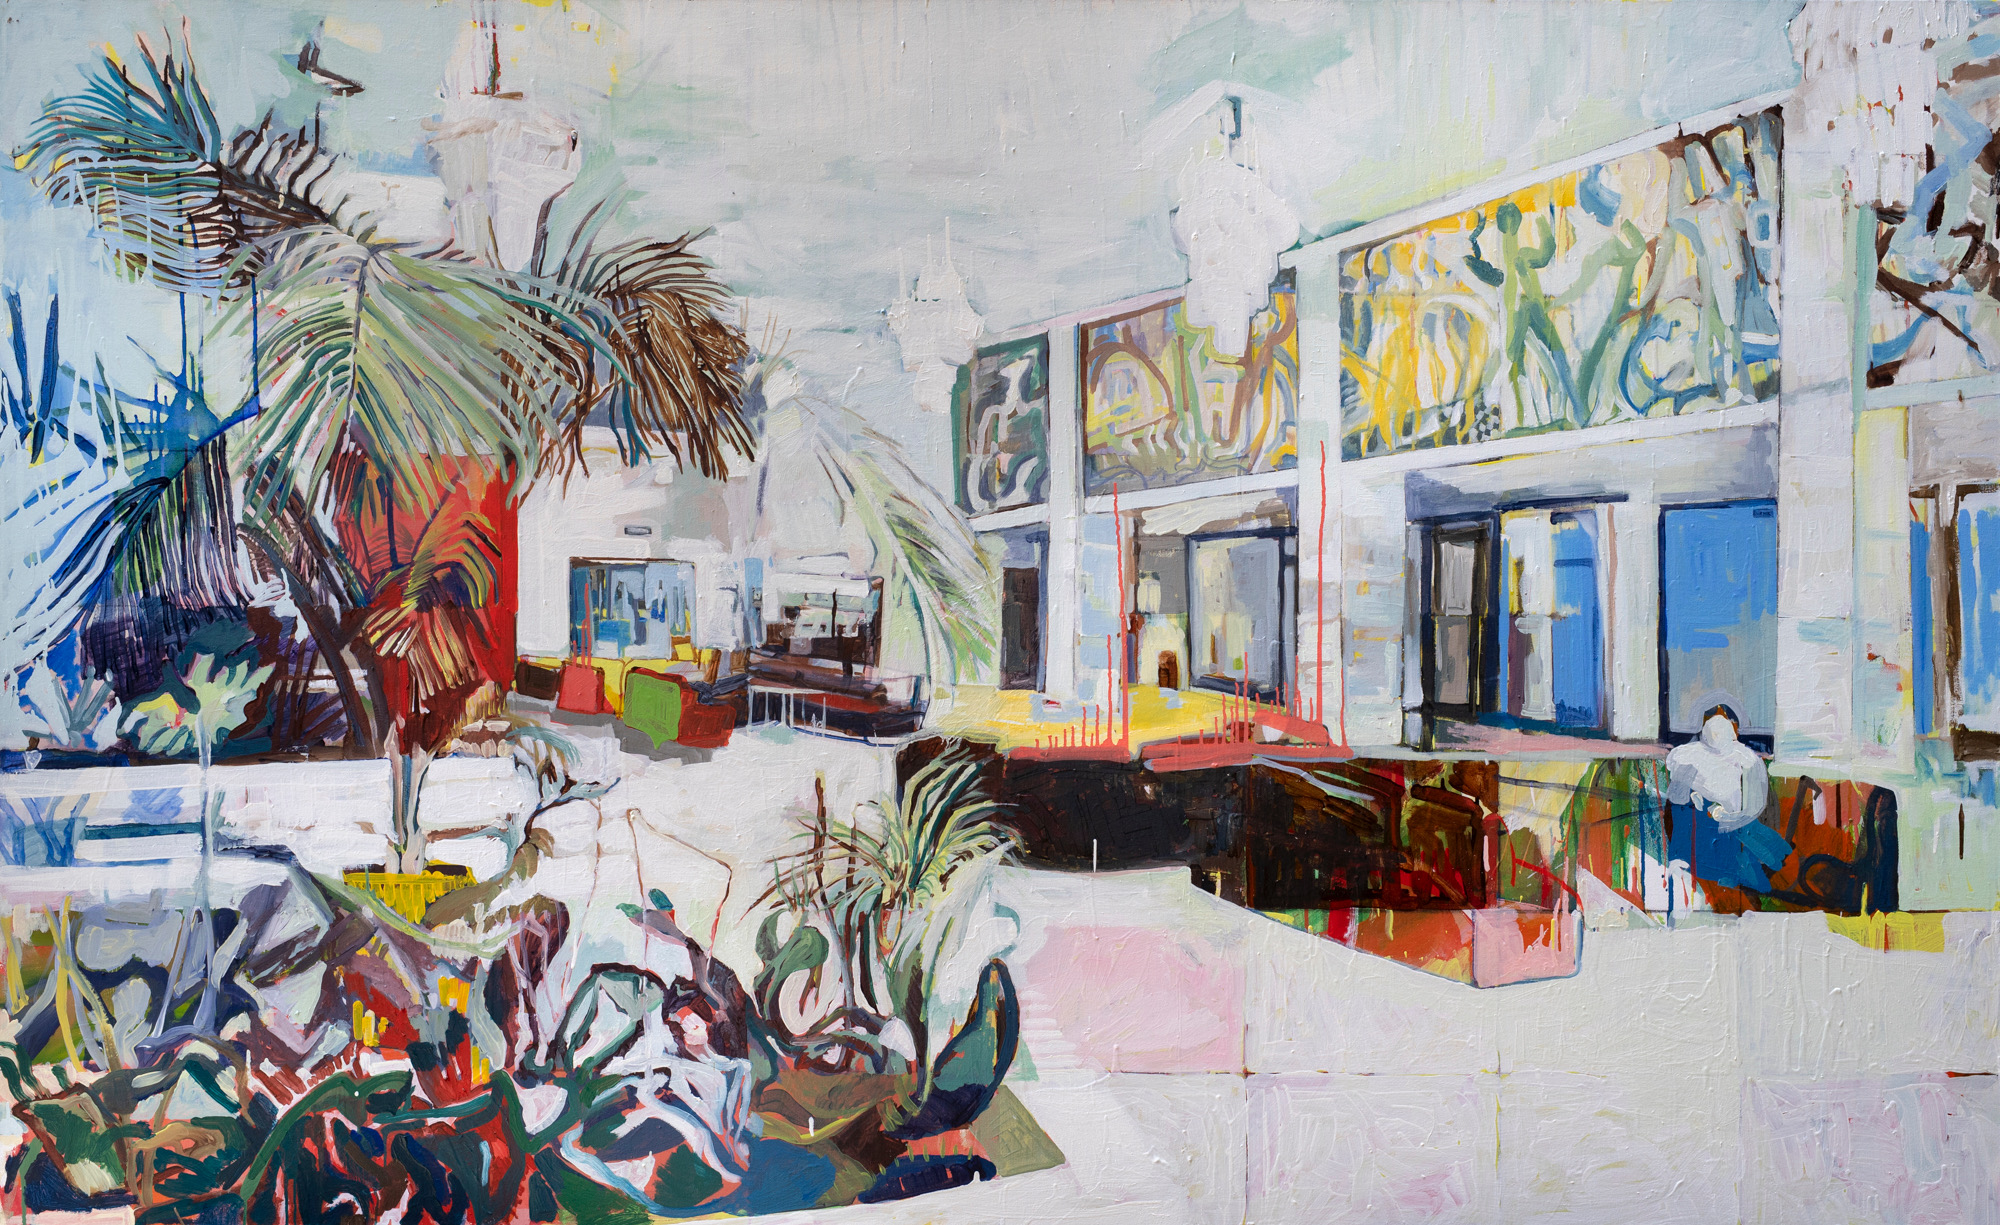 Pictured work: Foyer, oil on canvas, 120 x 190 cm